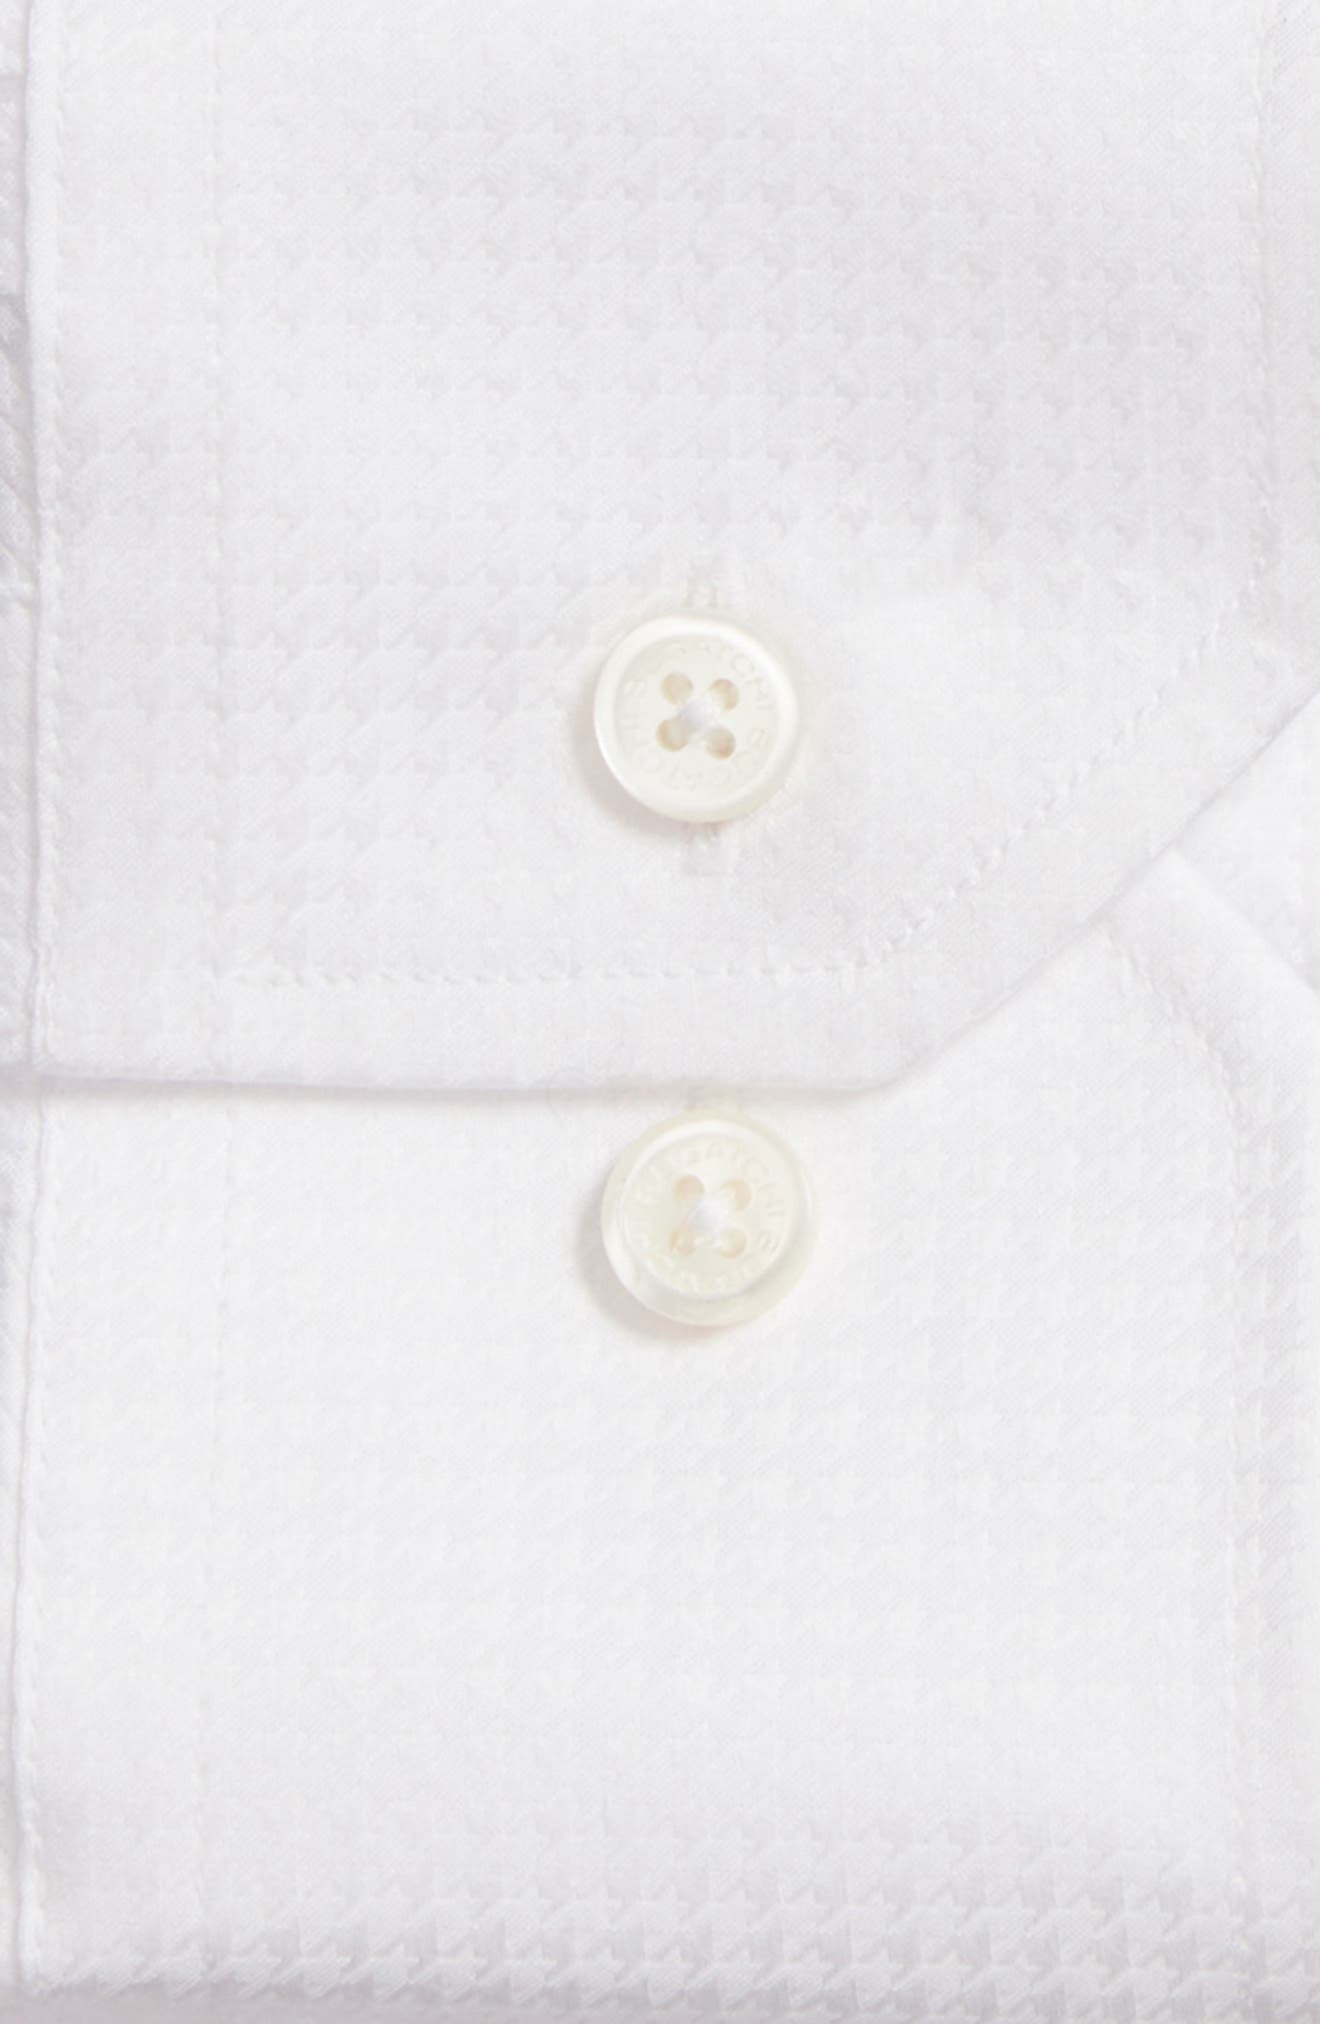 Trim Fit Houndstooth Dress Shirt,                             Alternate thumbnail 2, color,                             White